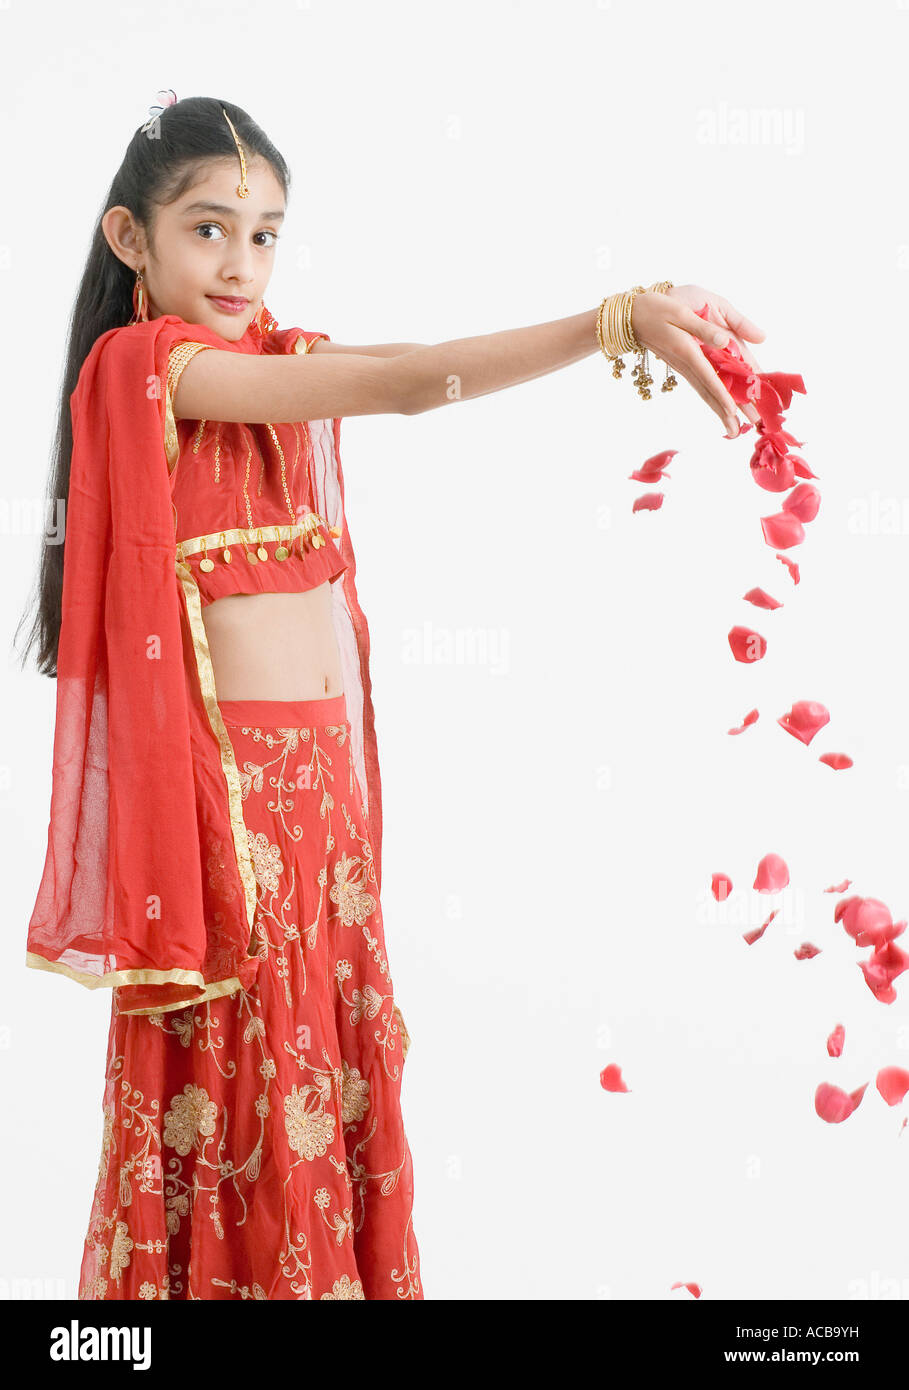 Portrait of a girl in traditional clothes dropping rose petals - Stock Image